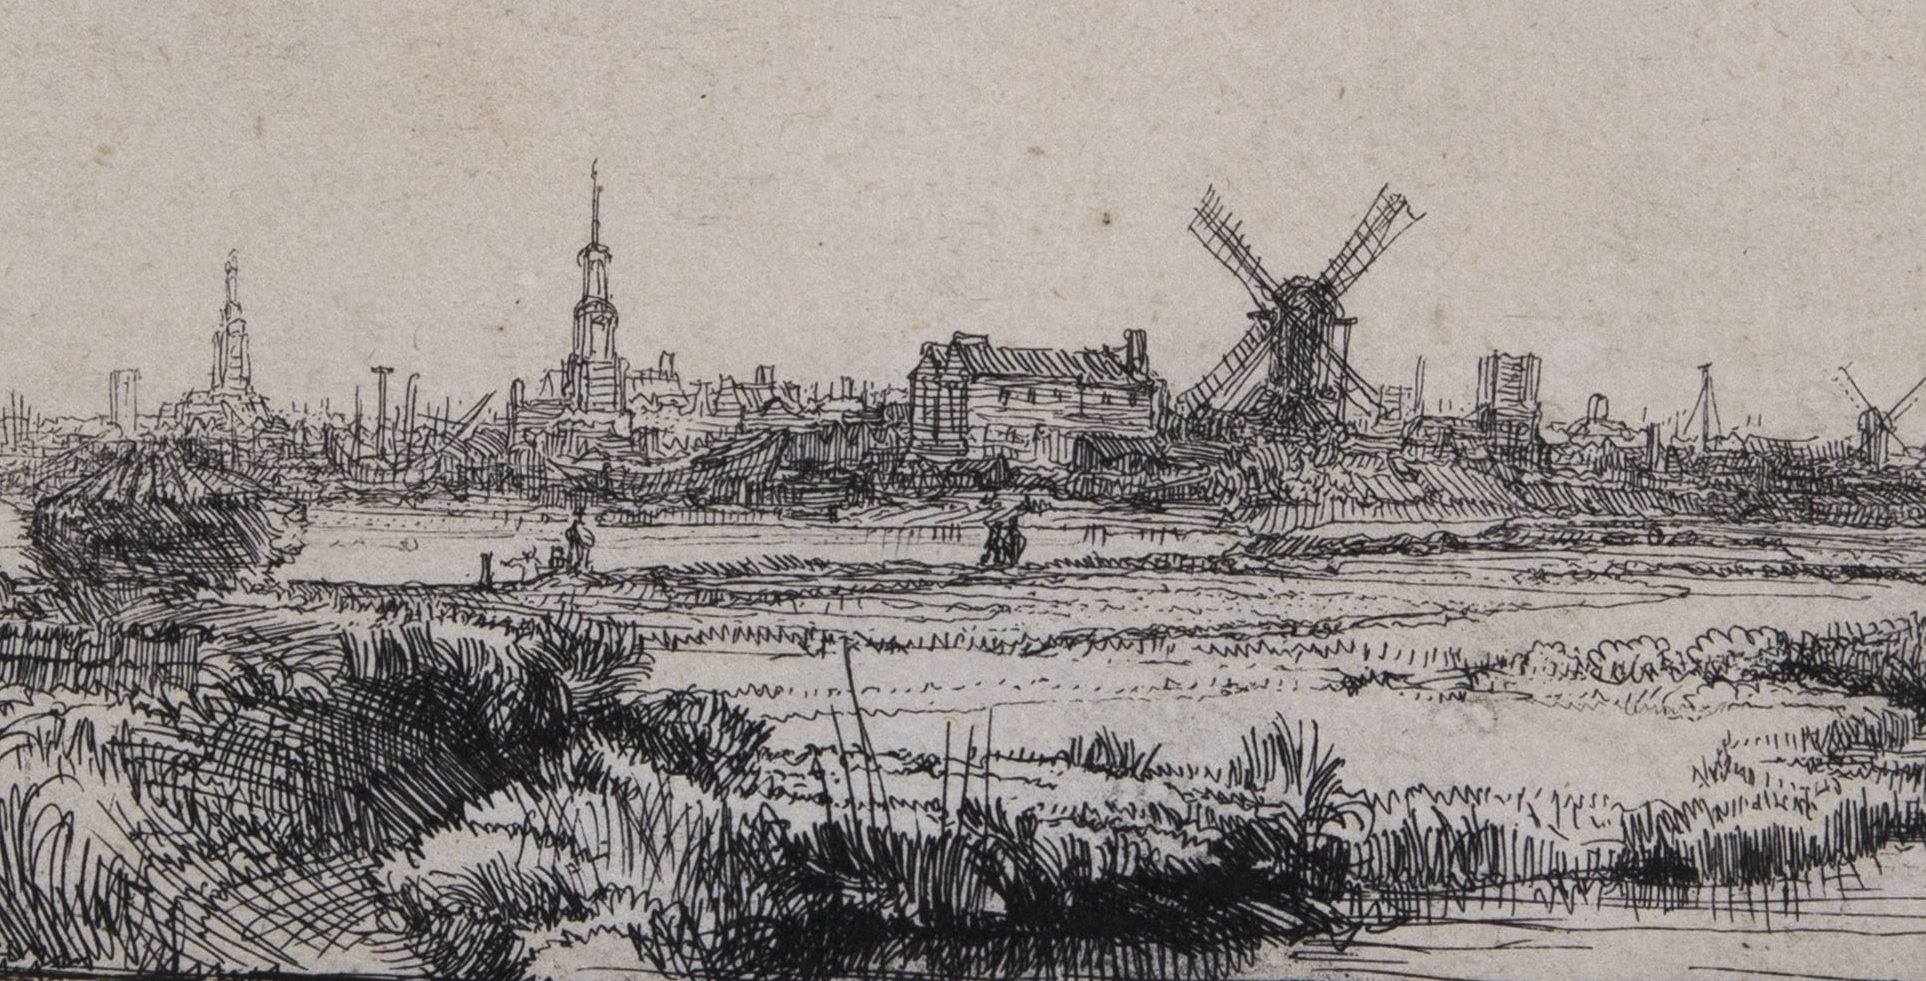 Rembrandt van Rijn, View of Amsterdam from the Northwest